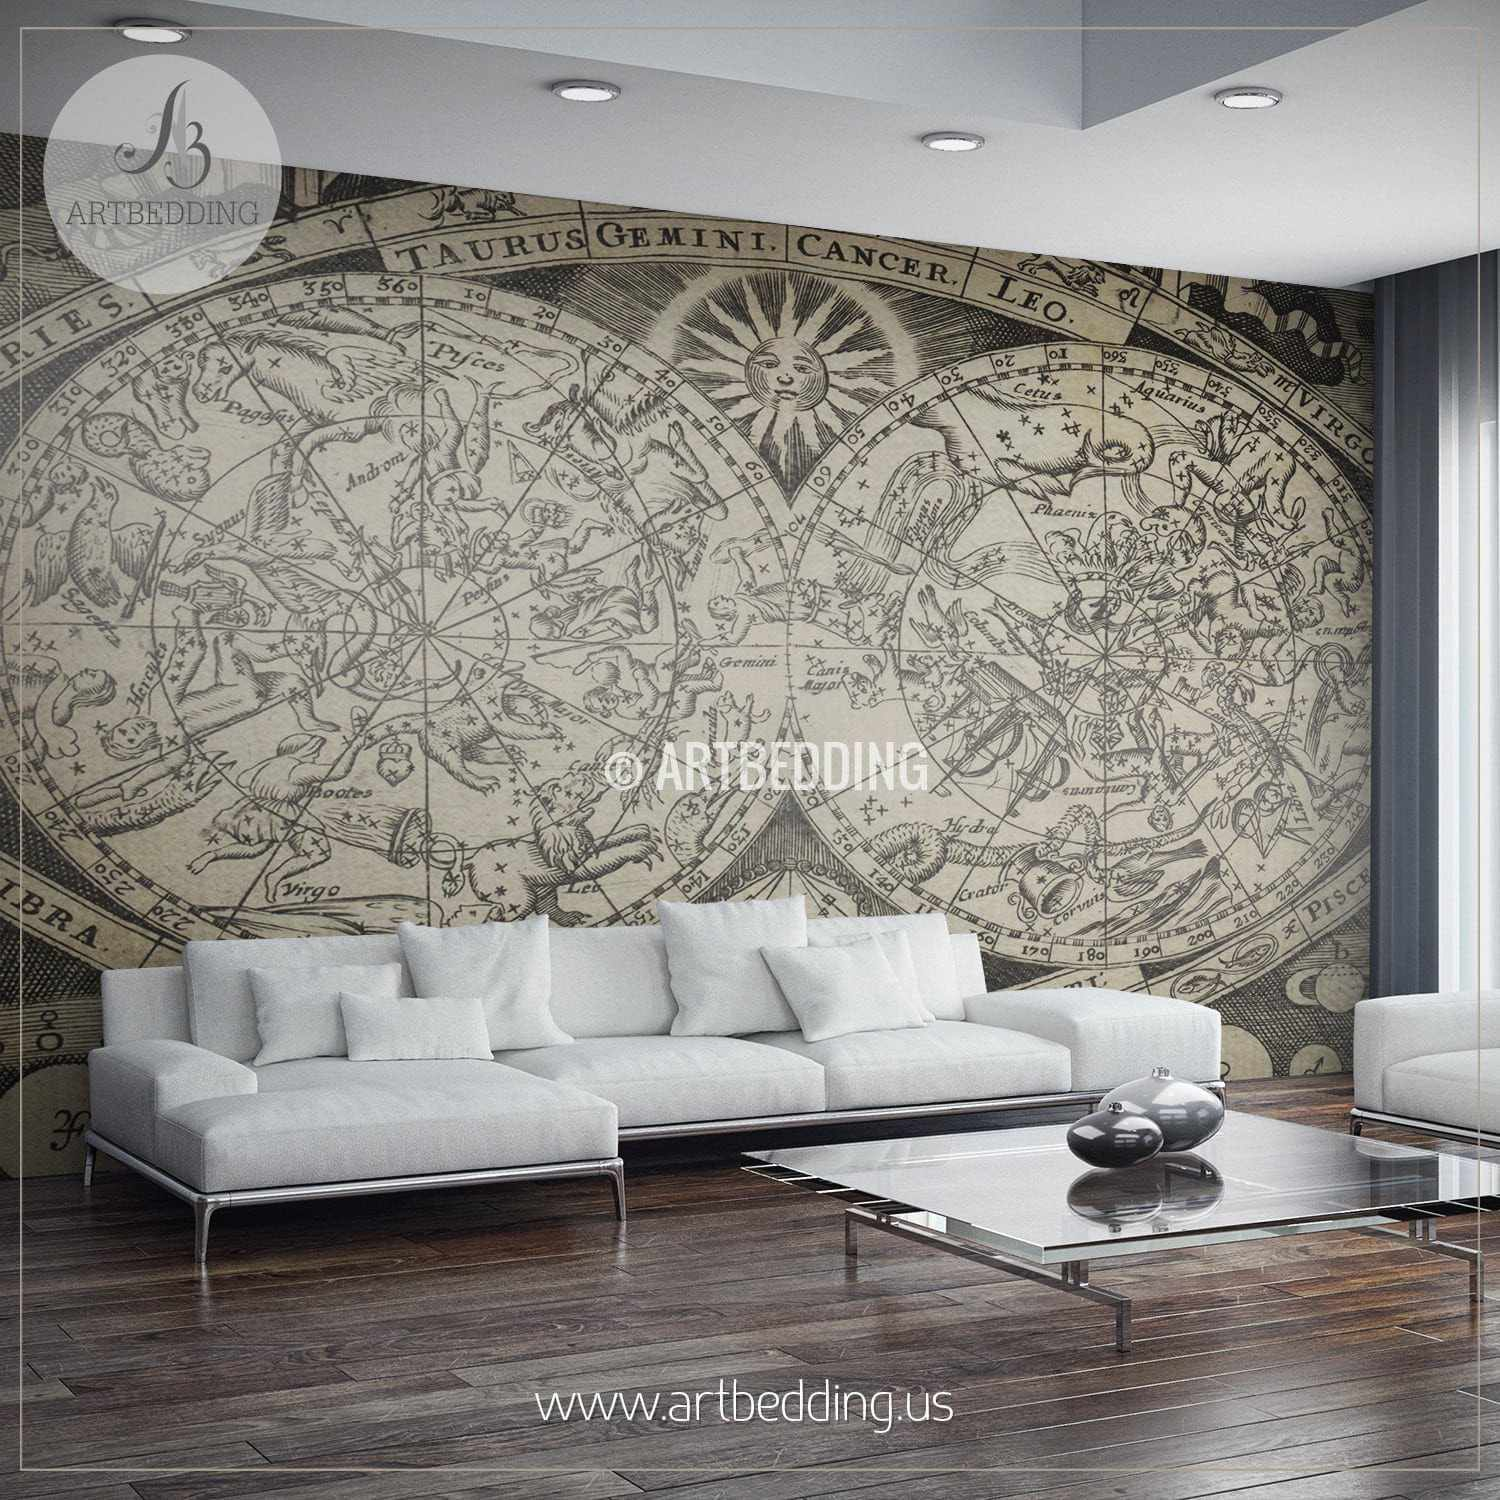 Vintage map wall mural self adhesive photo mural artbedding vintage astronomical celestial map wall mural self adhesive peel stick photo mural atlas amipublicfo Gallery